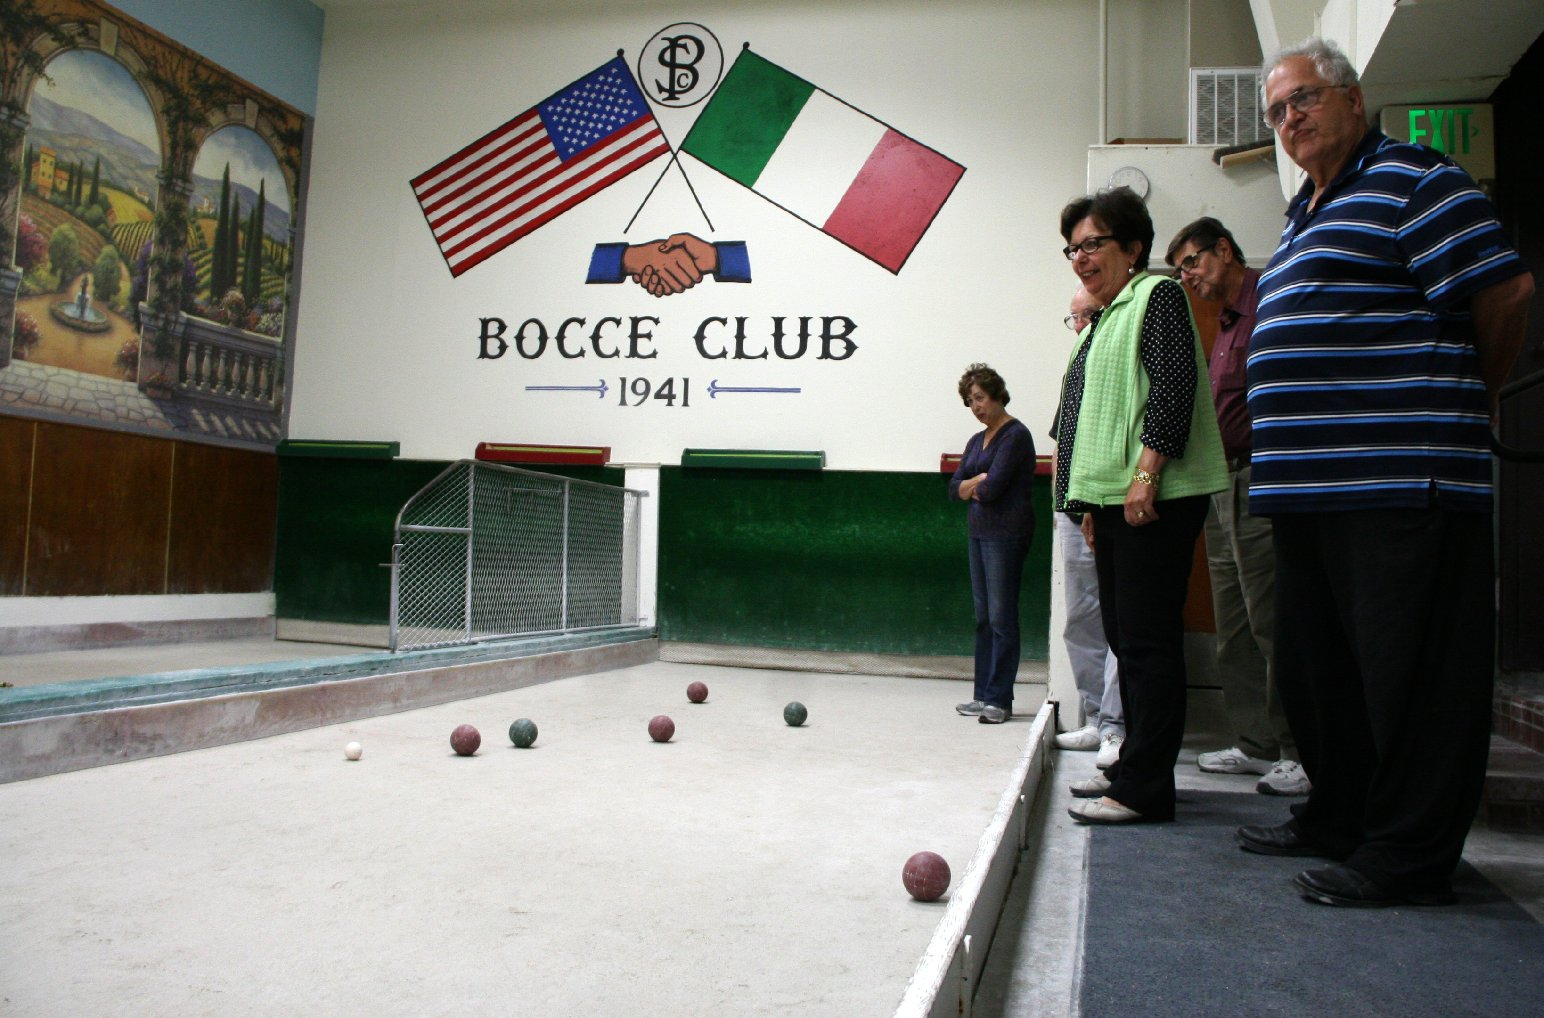 Bocce at Social Clubs Keeps Older Italians Tied to Their Roots